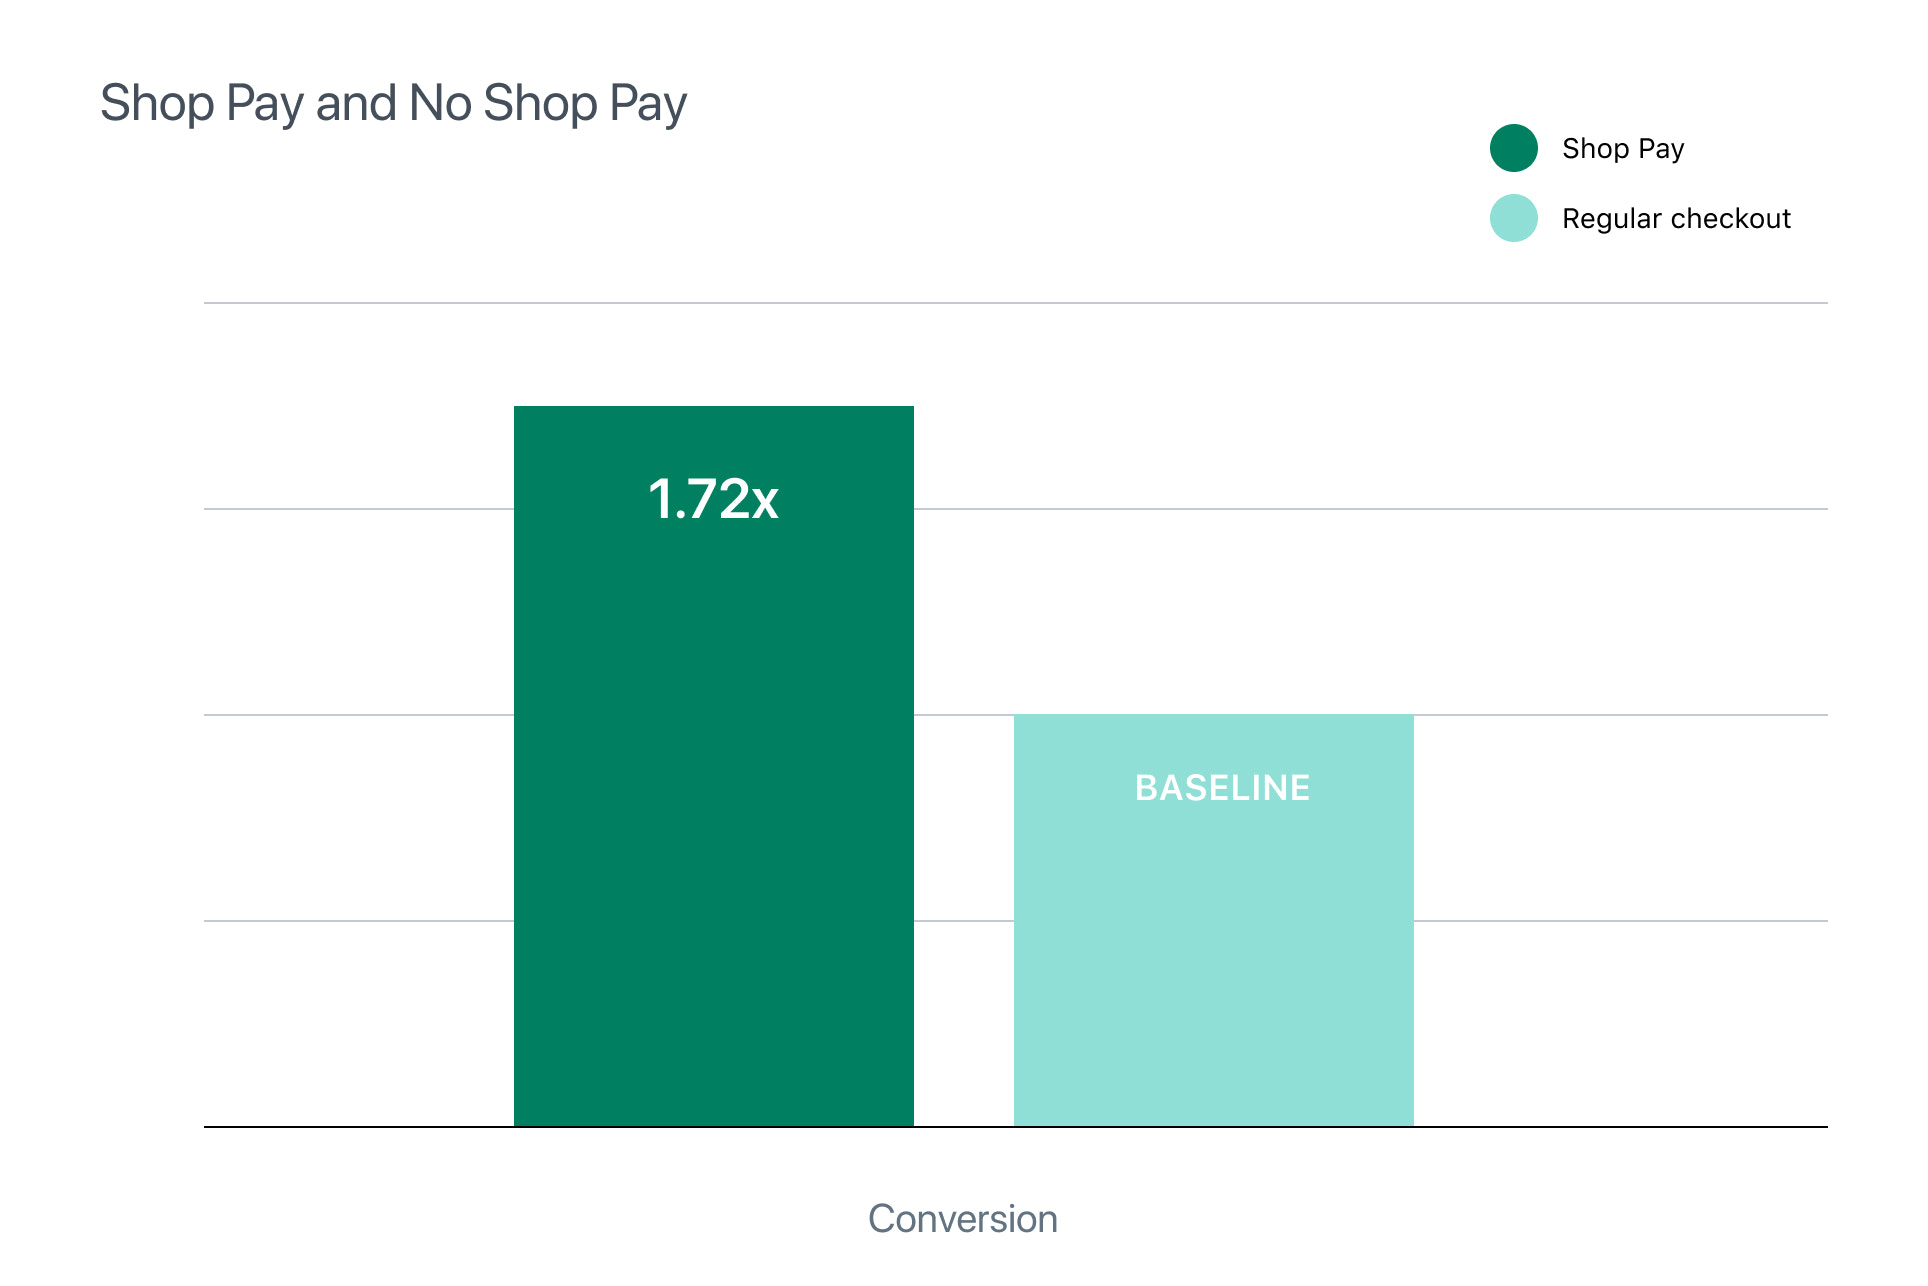 Chart showing that checkouts on Shop Pay convert 1.72 times better than normal checkouts